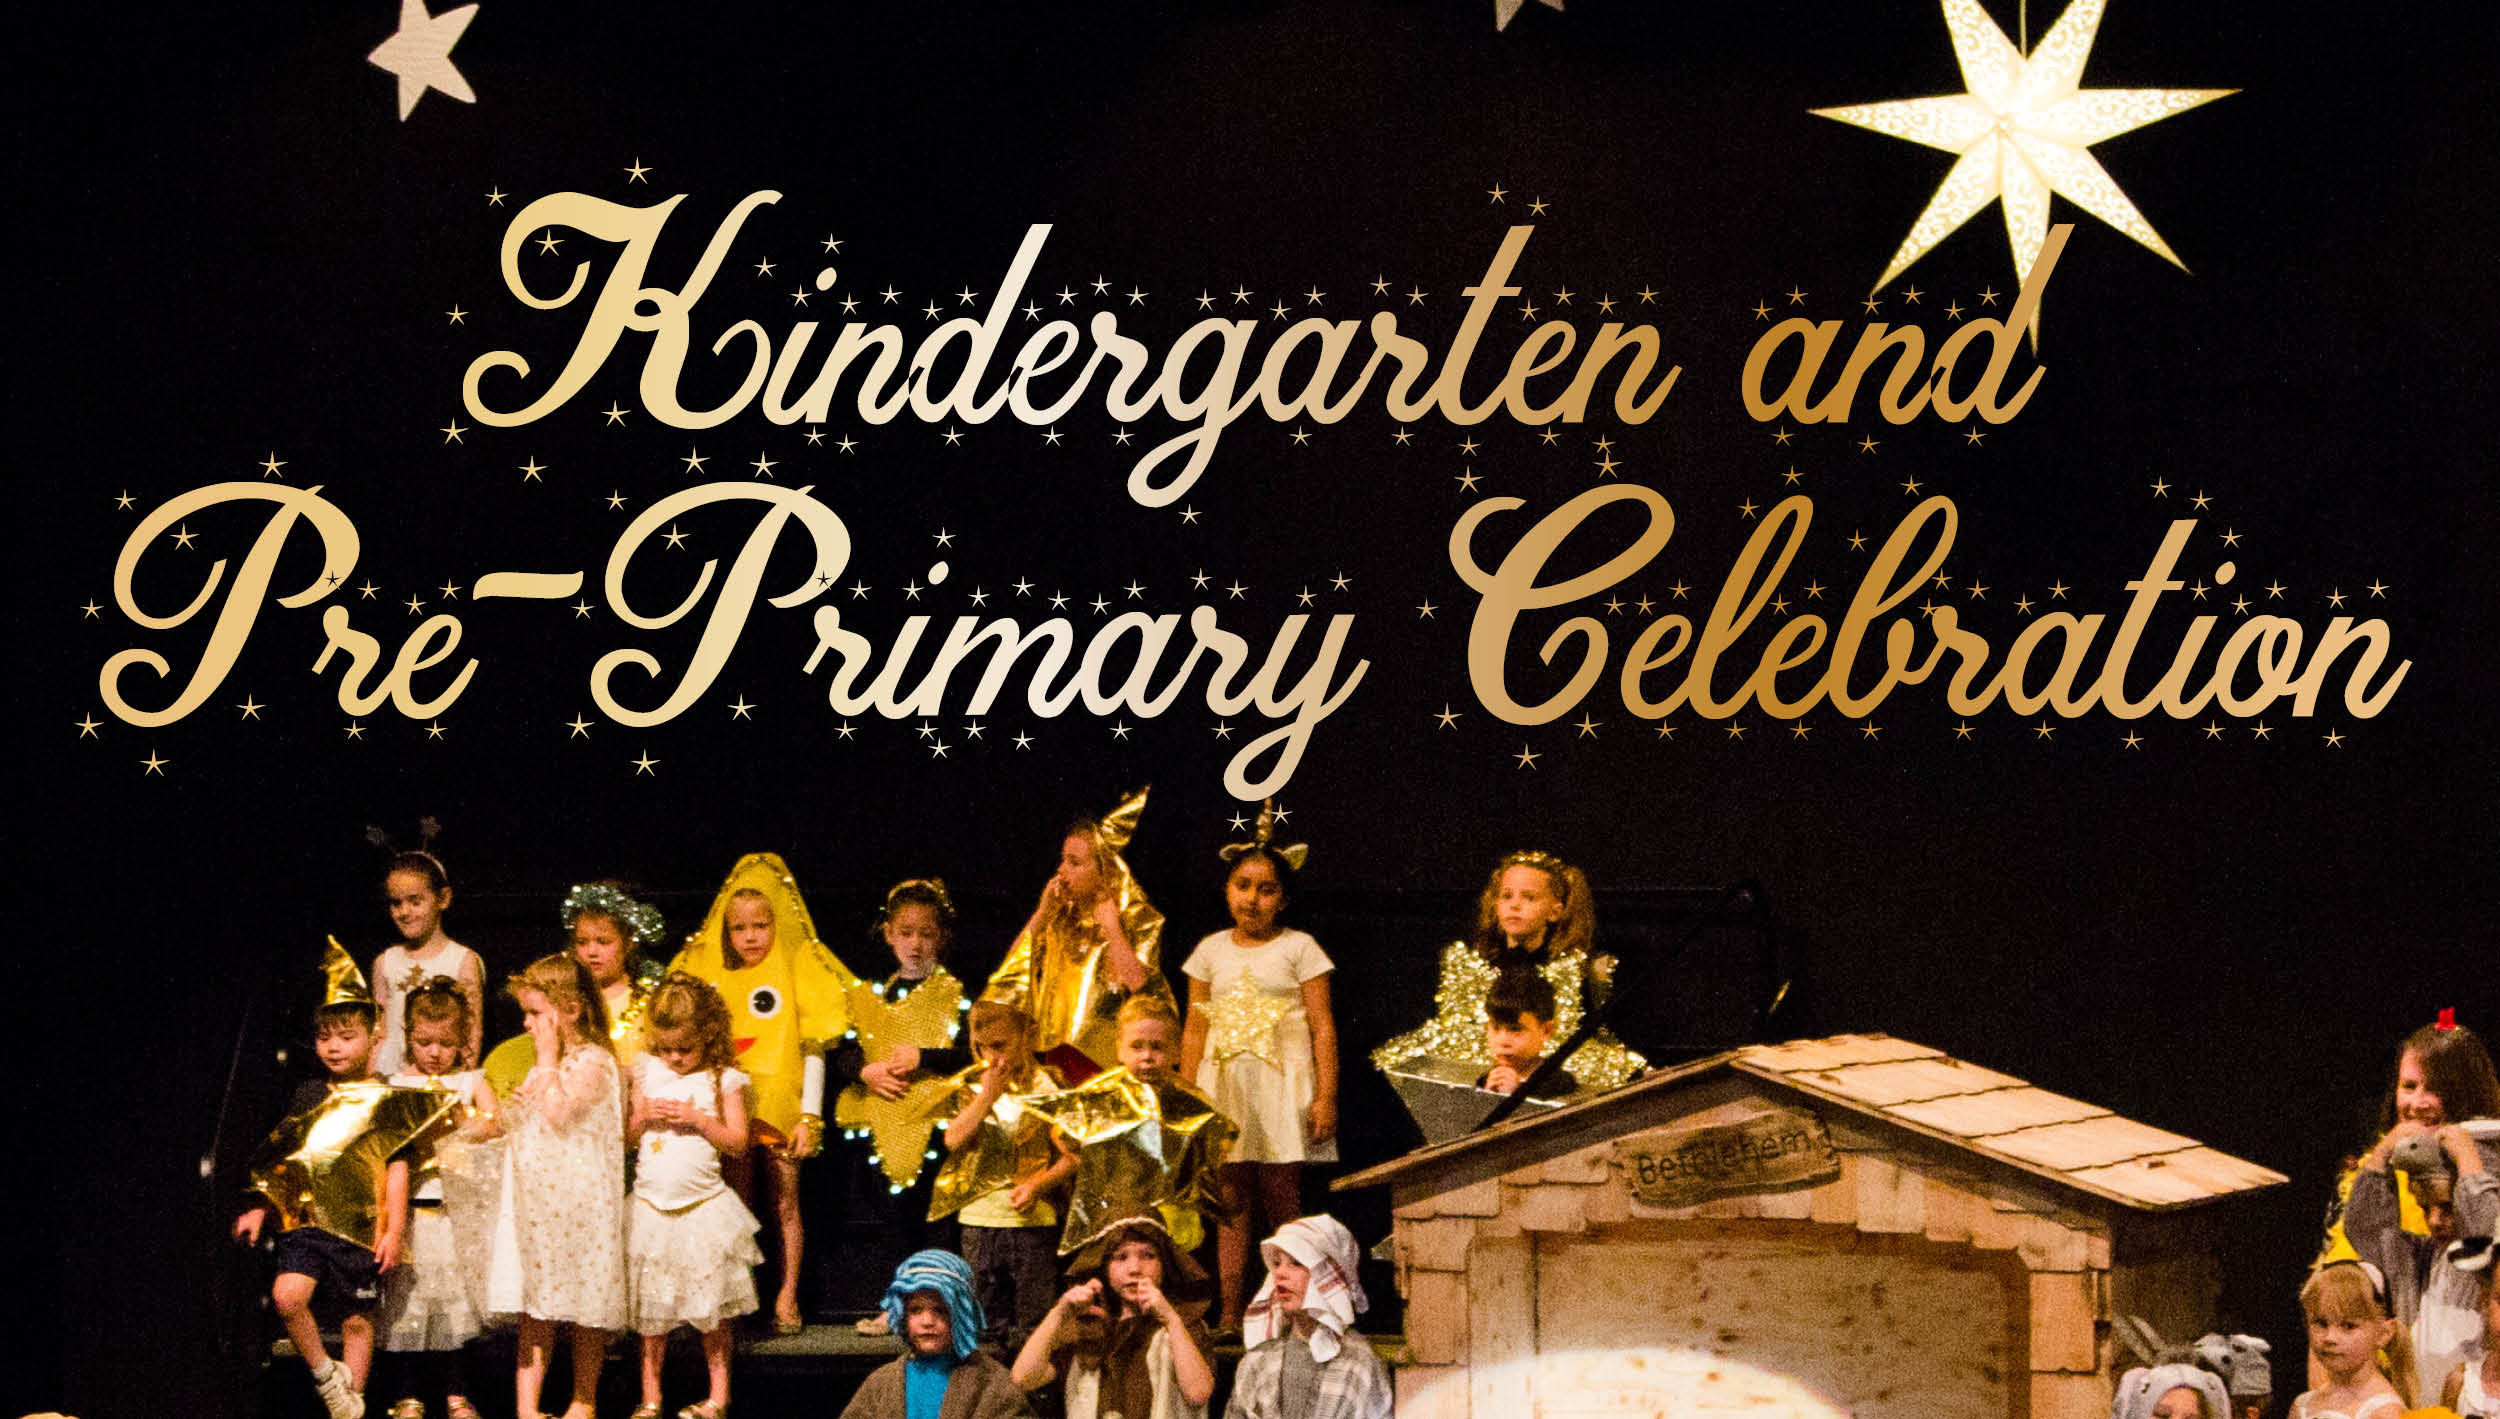 Image for Kindergarten and Pre Primary Celebration